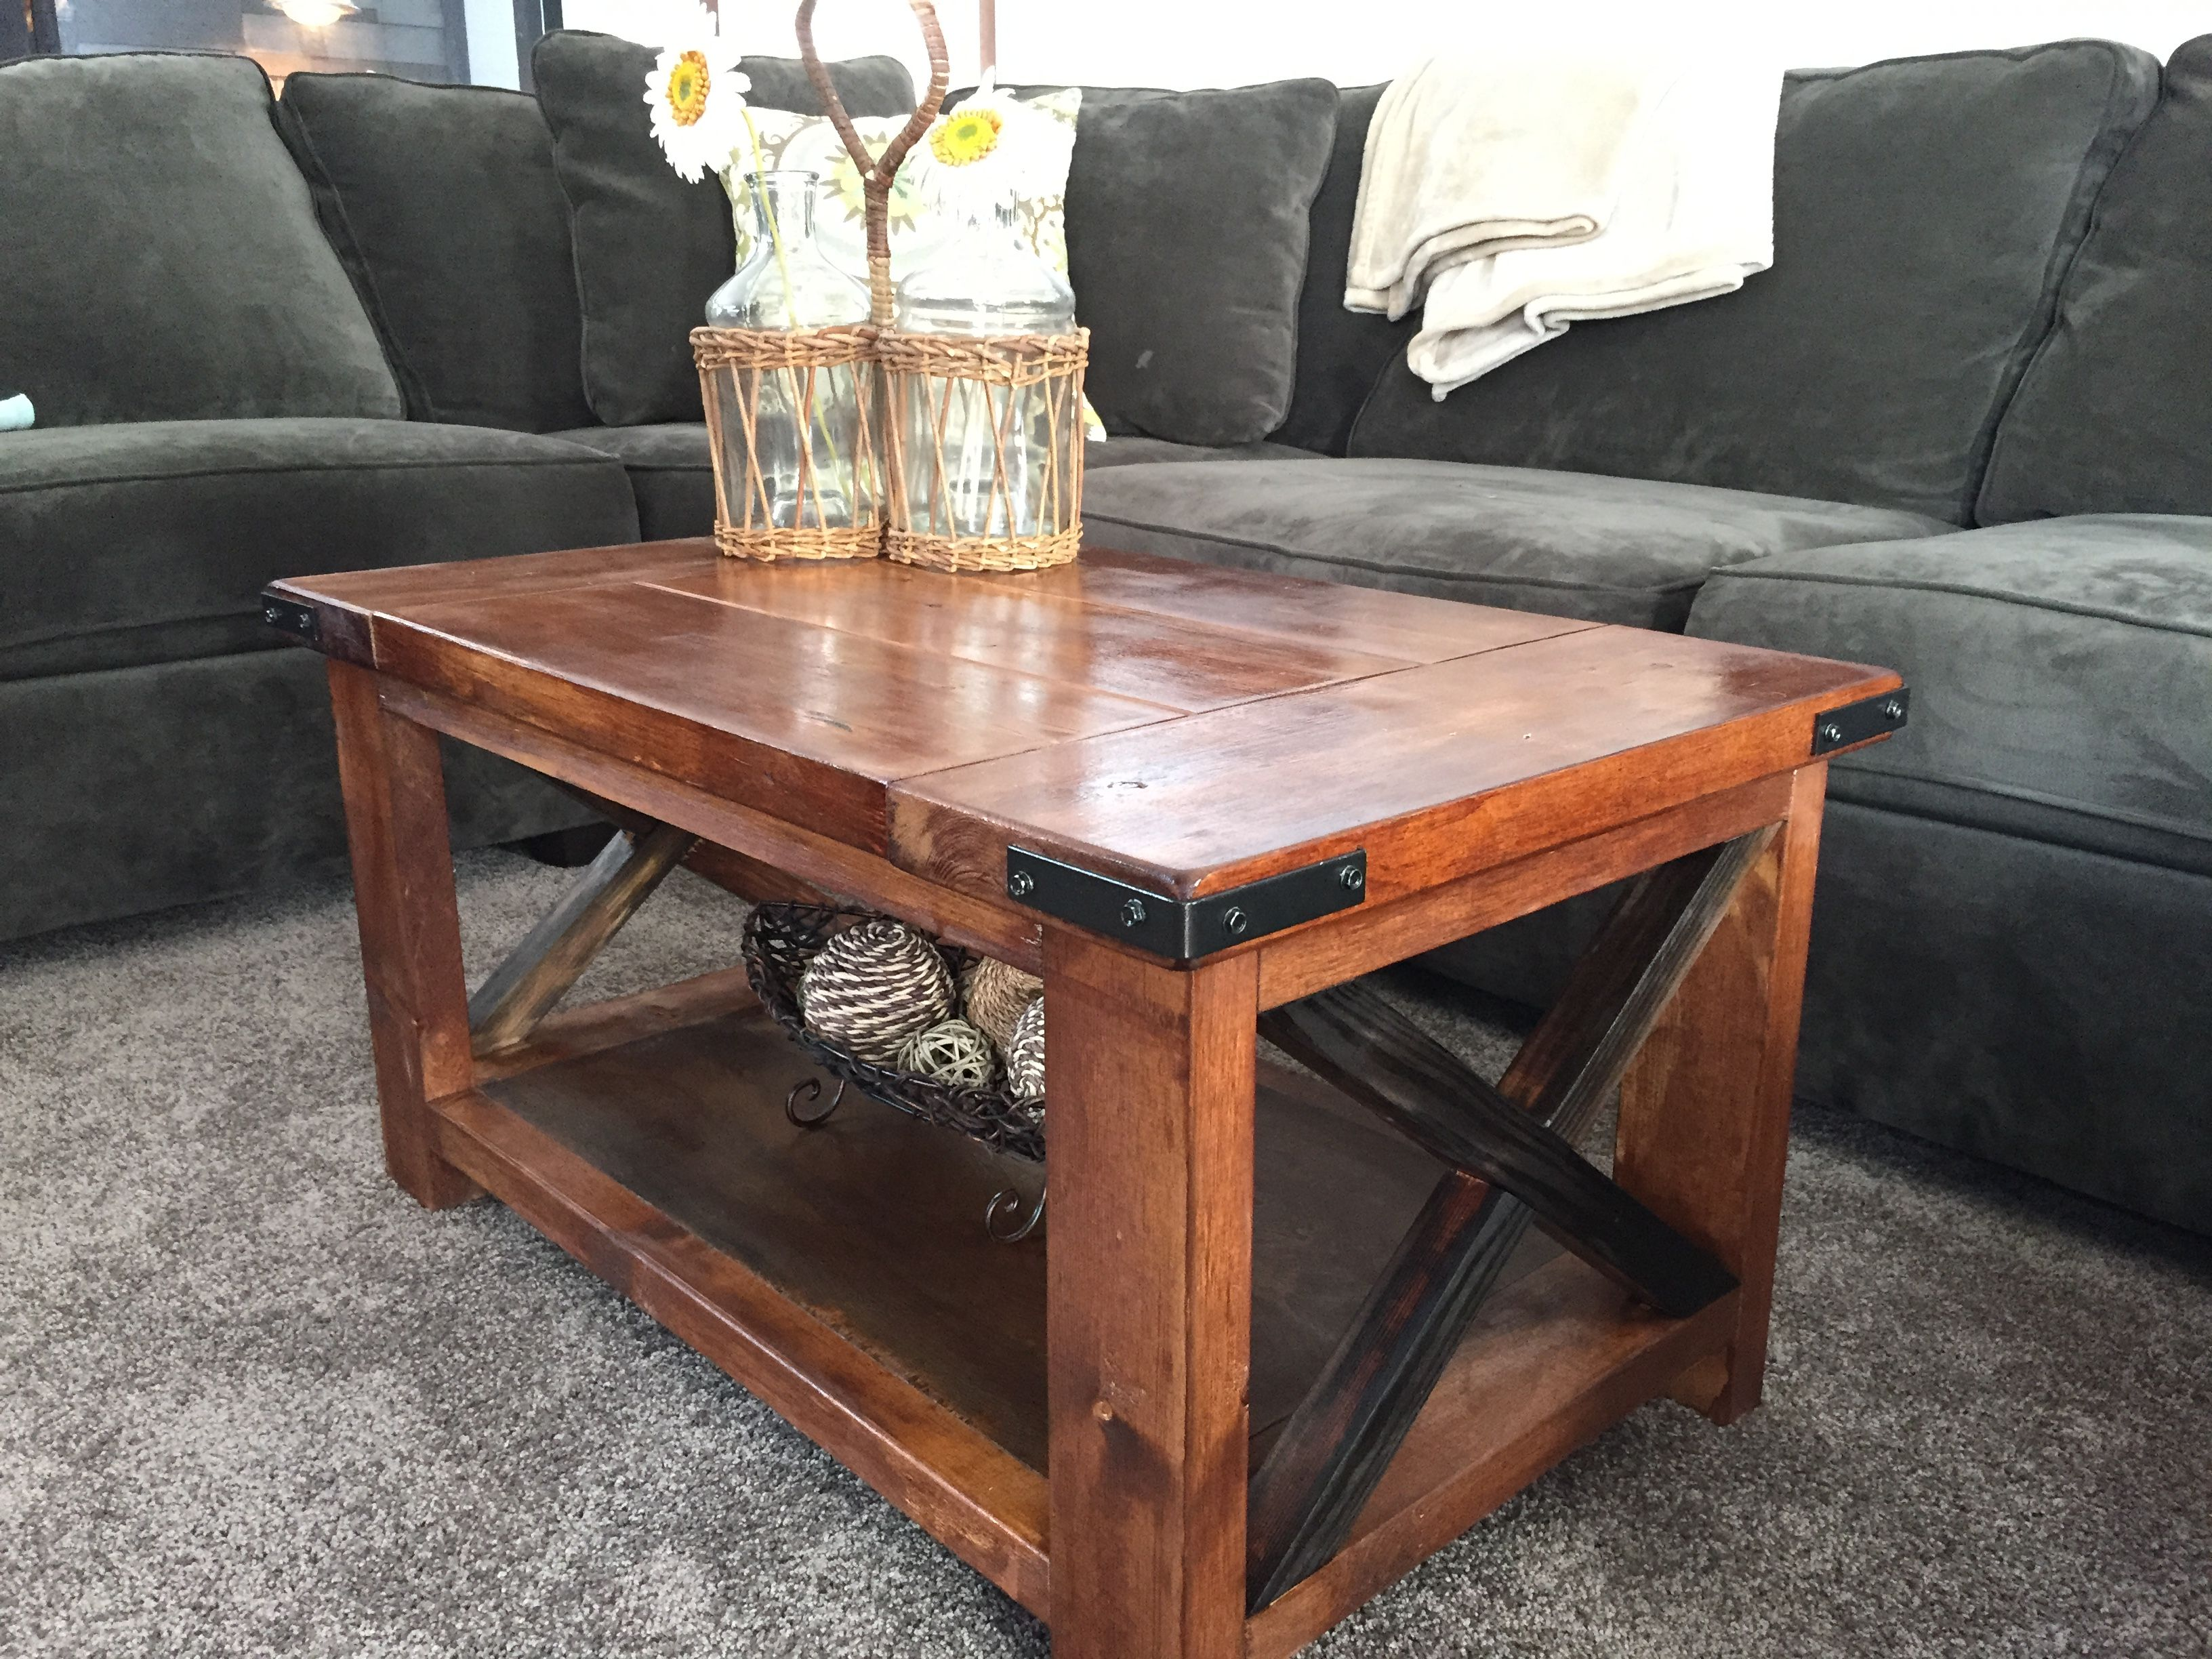 Handmade rustic coffee table by richter ranch custom designs Unique rustic coffee tables